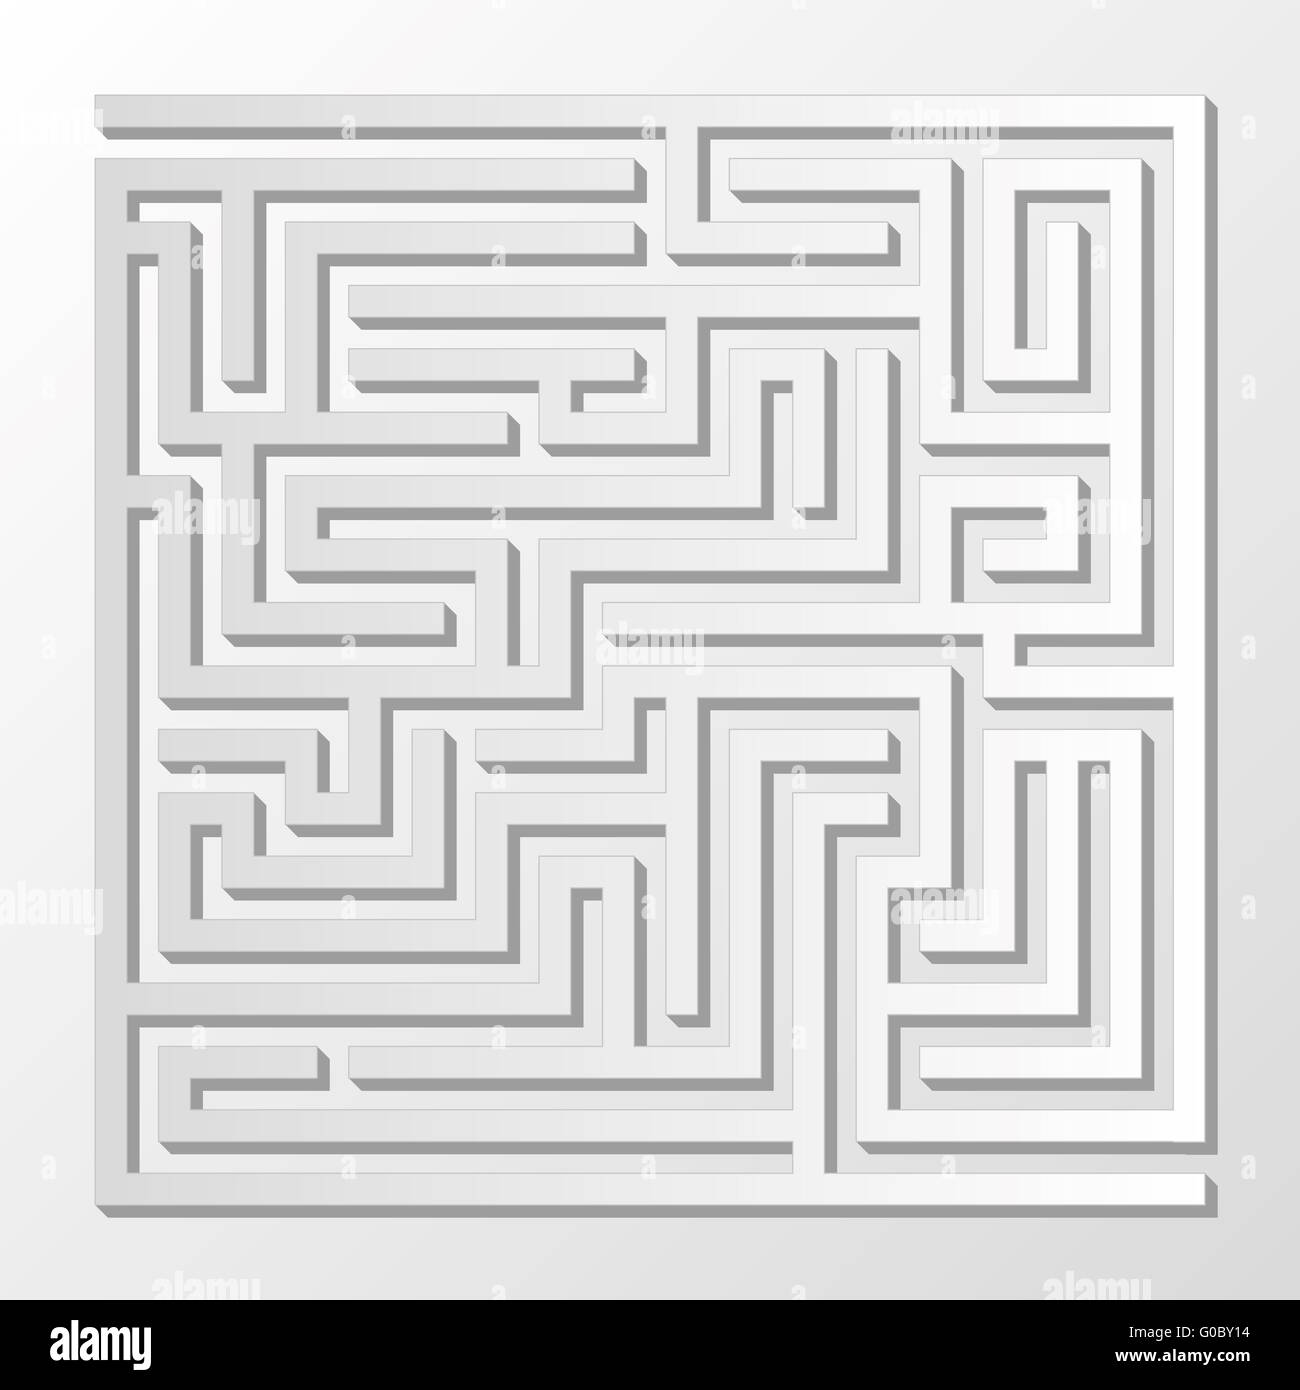 Find the right way - Stock Image